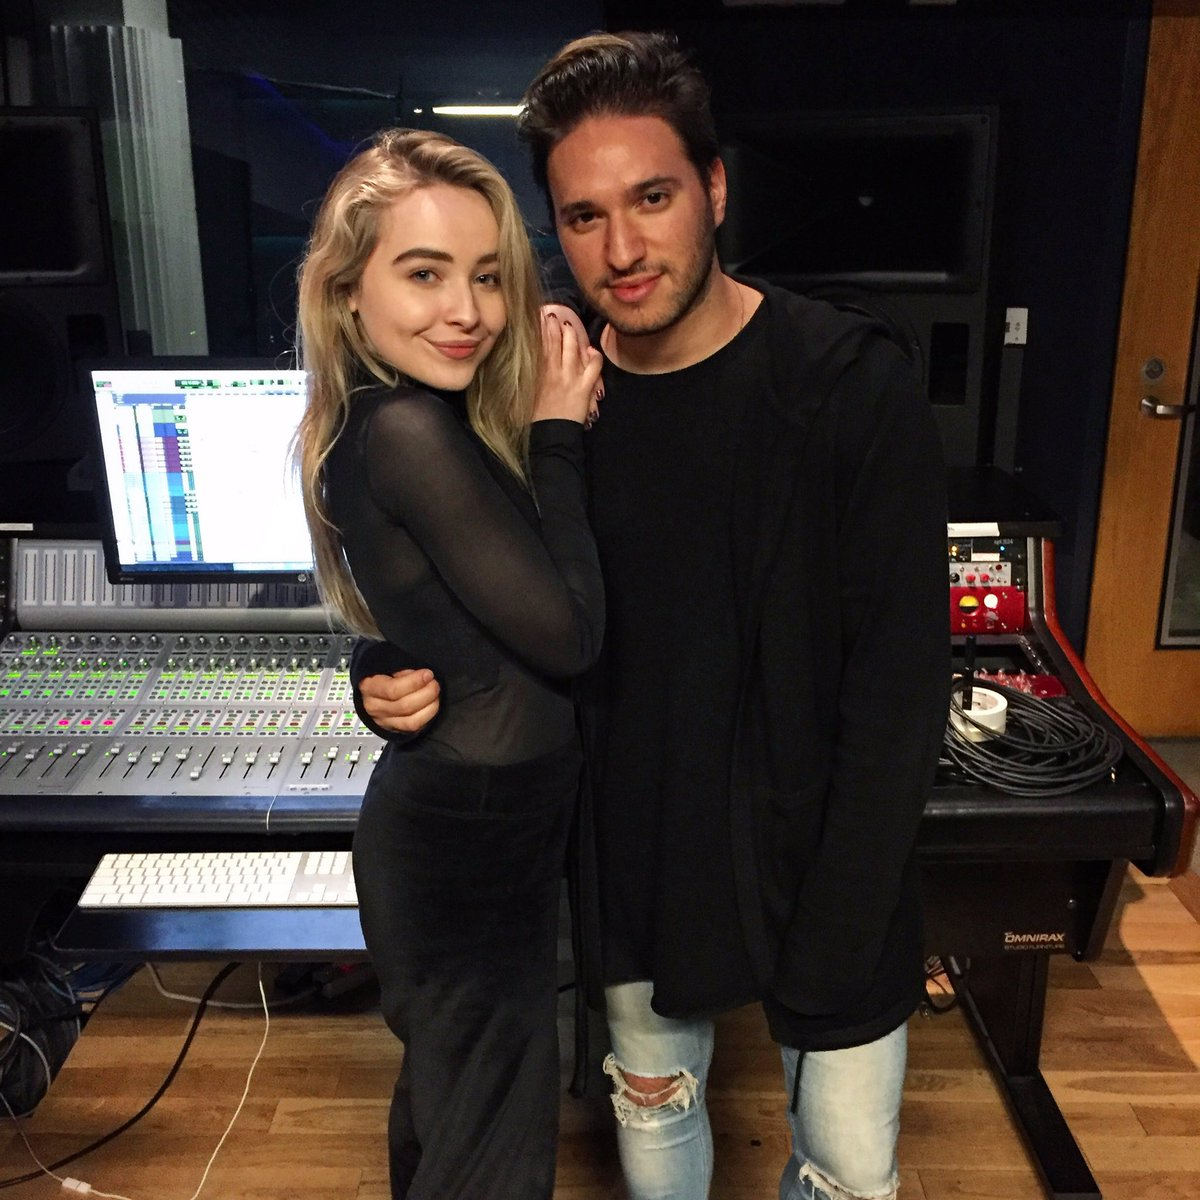 Amazing day in the studio with this one @SabrinaAnnLynn! 🖤😊